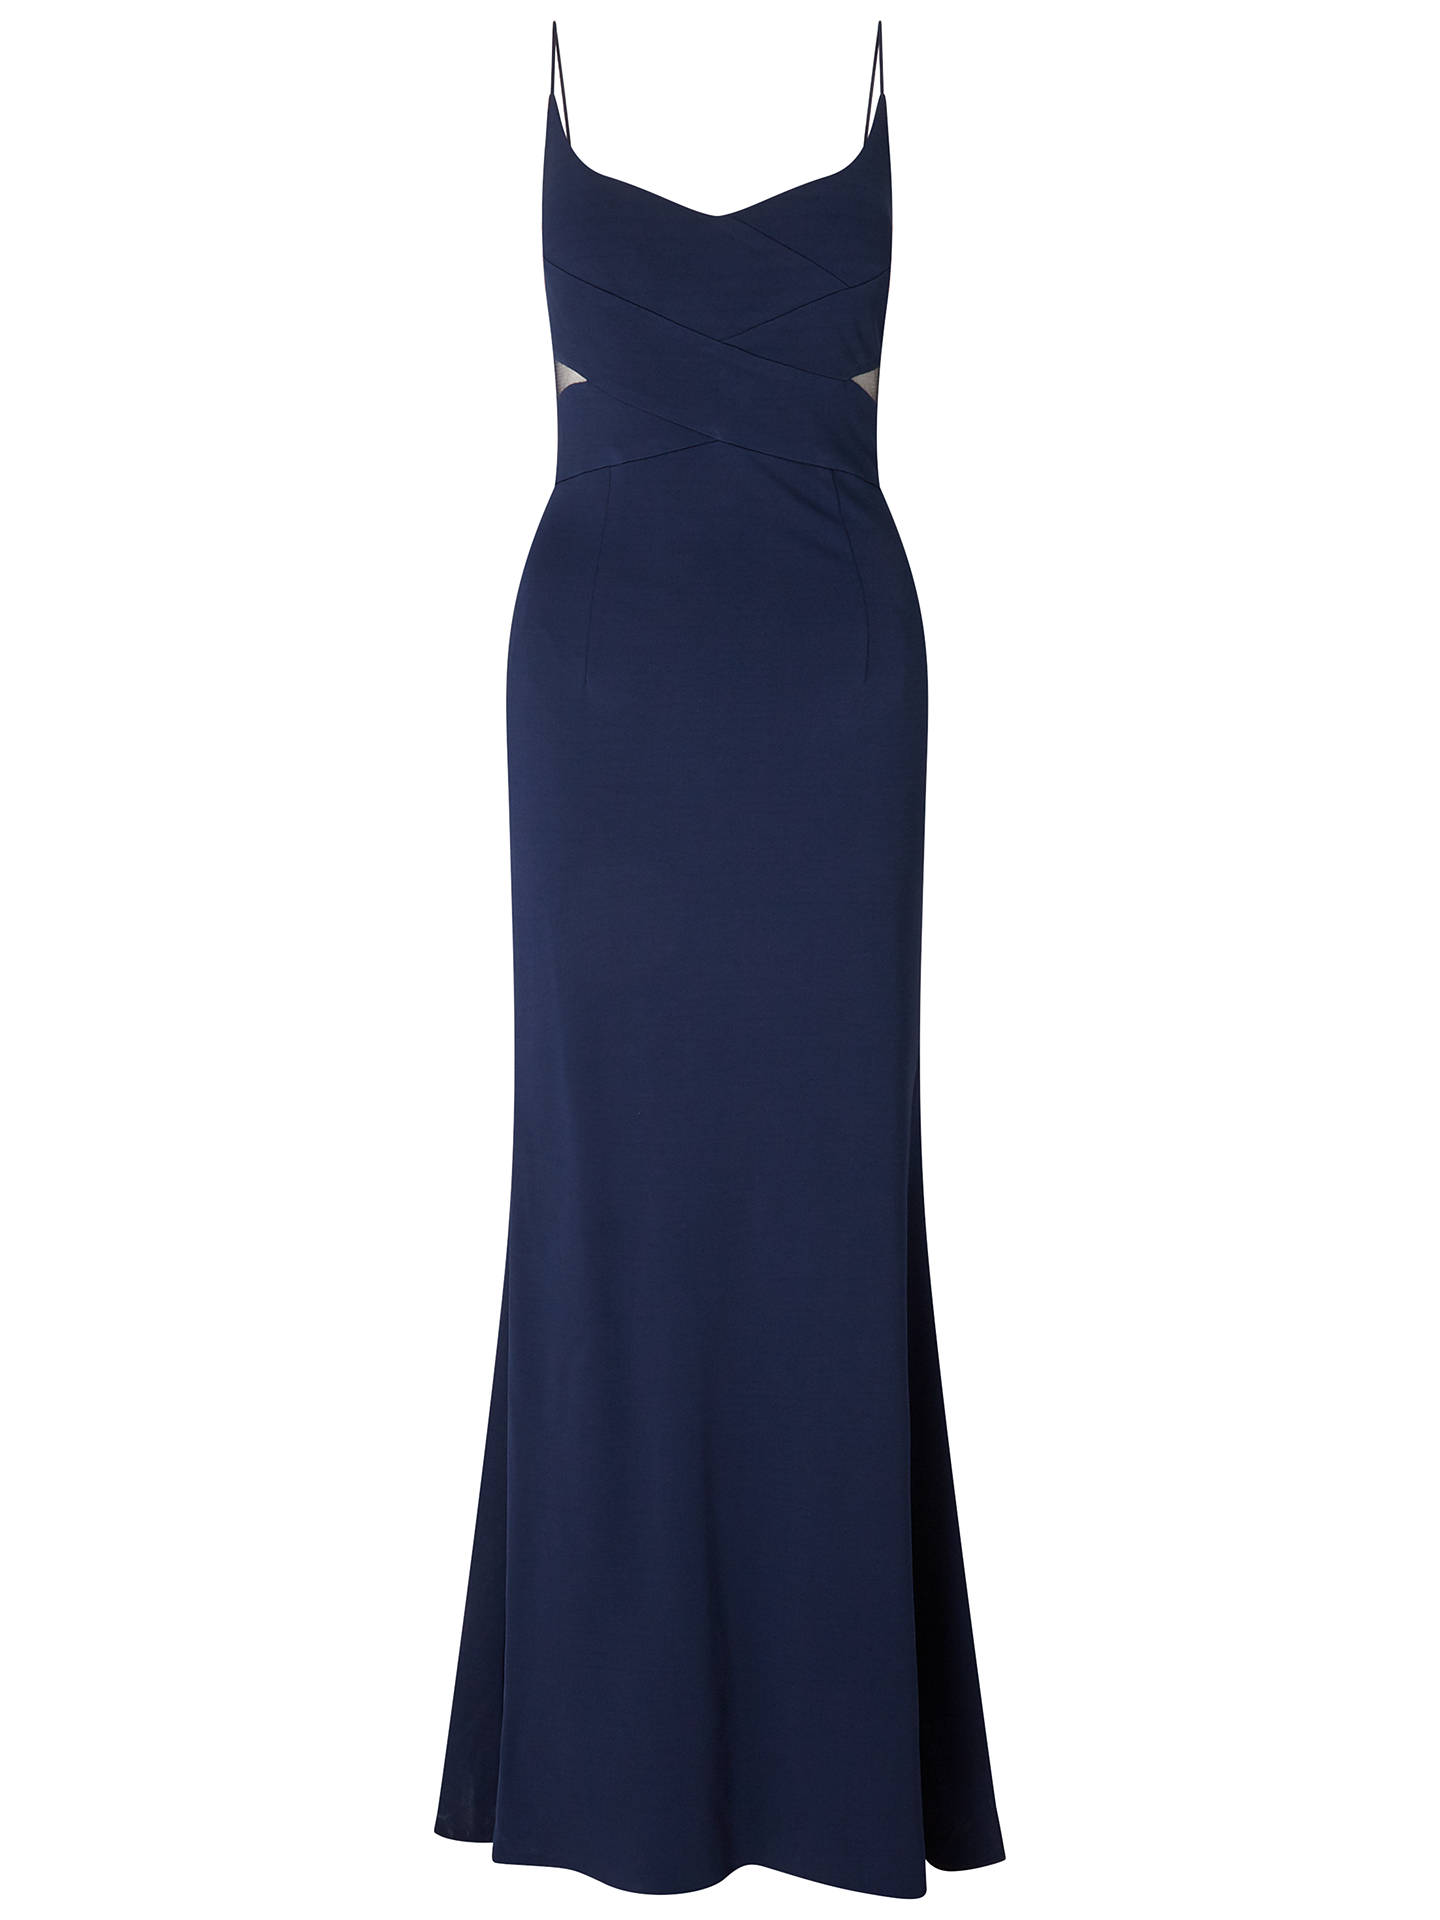 Adrianna Papell Sleeveless Mermaid Gown, Midnight Blue at John Lewis ...